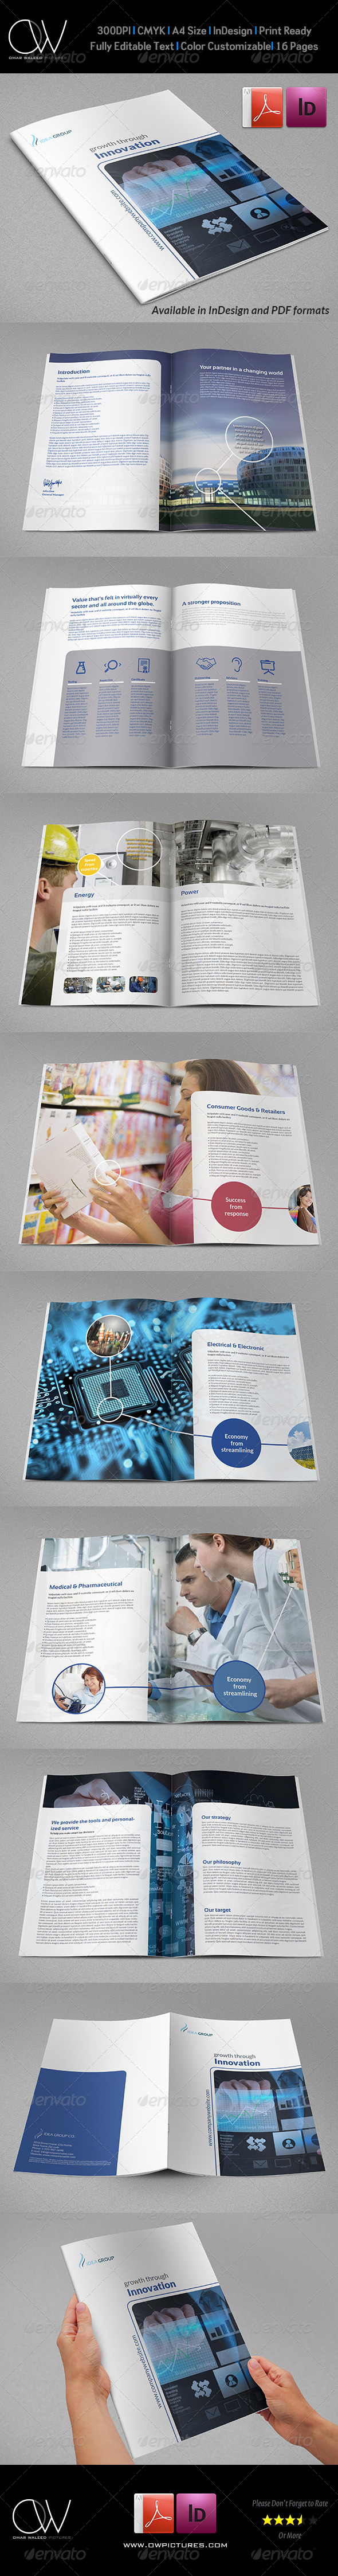 Corporate Brochure Template Vol.27 16 Pages